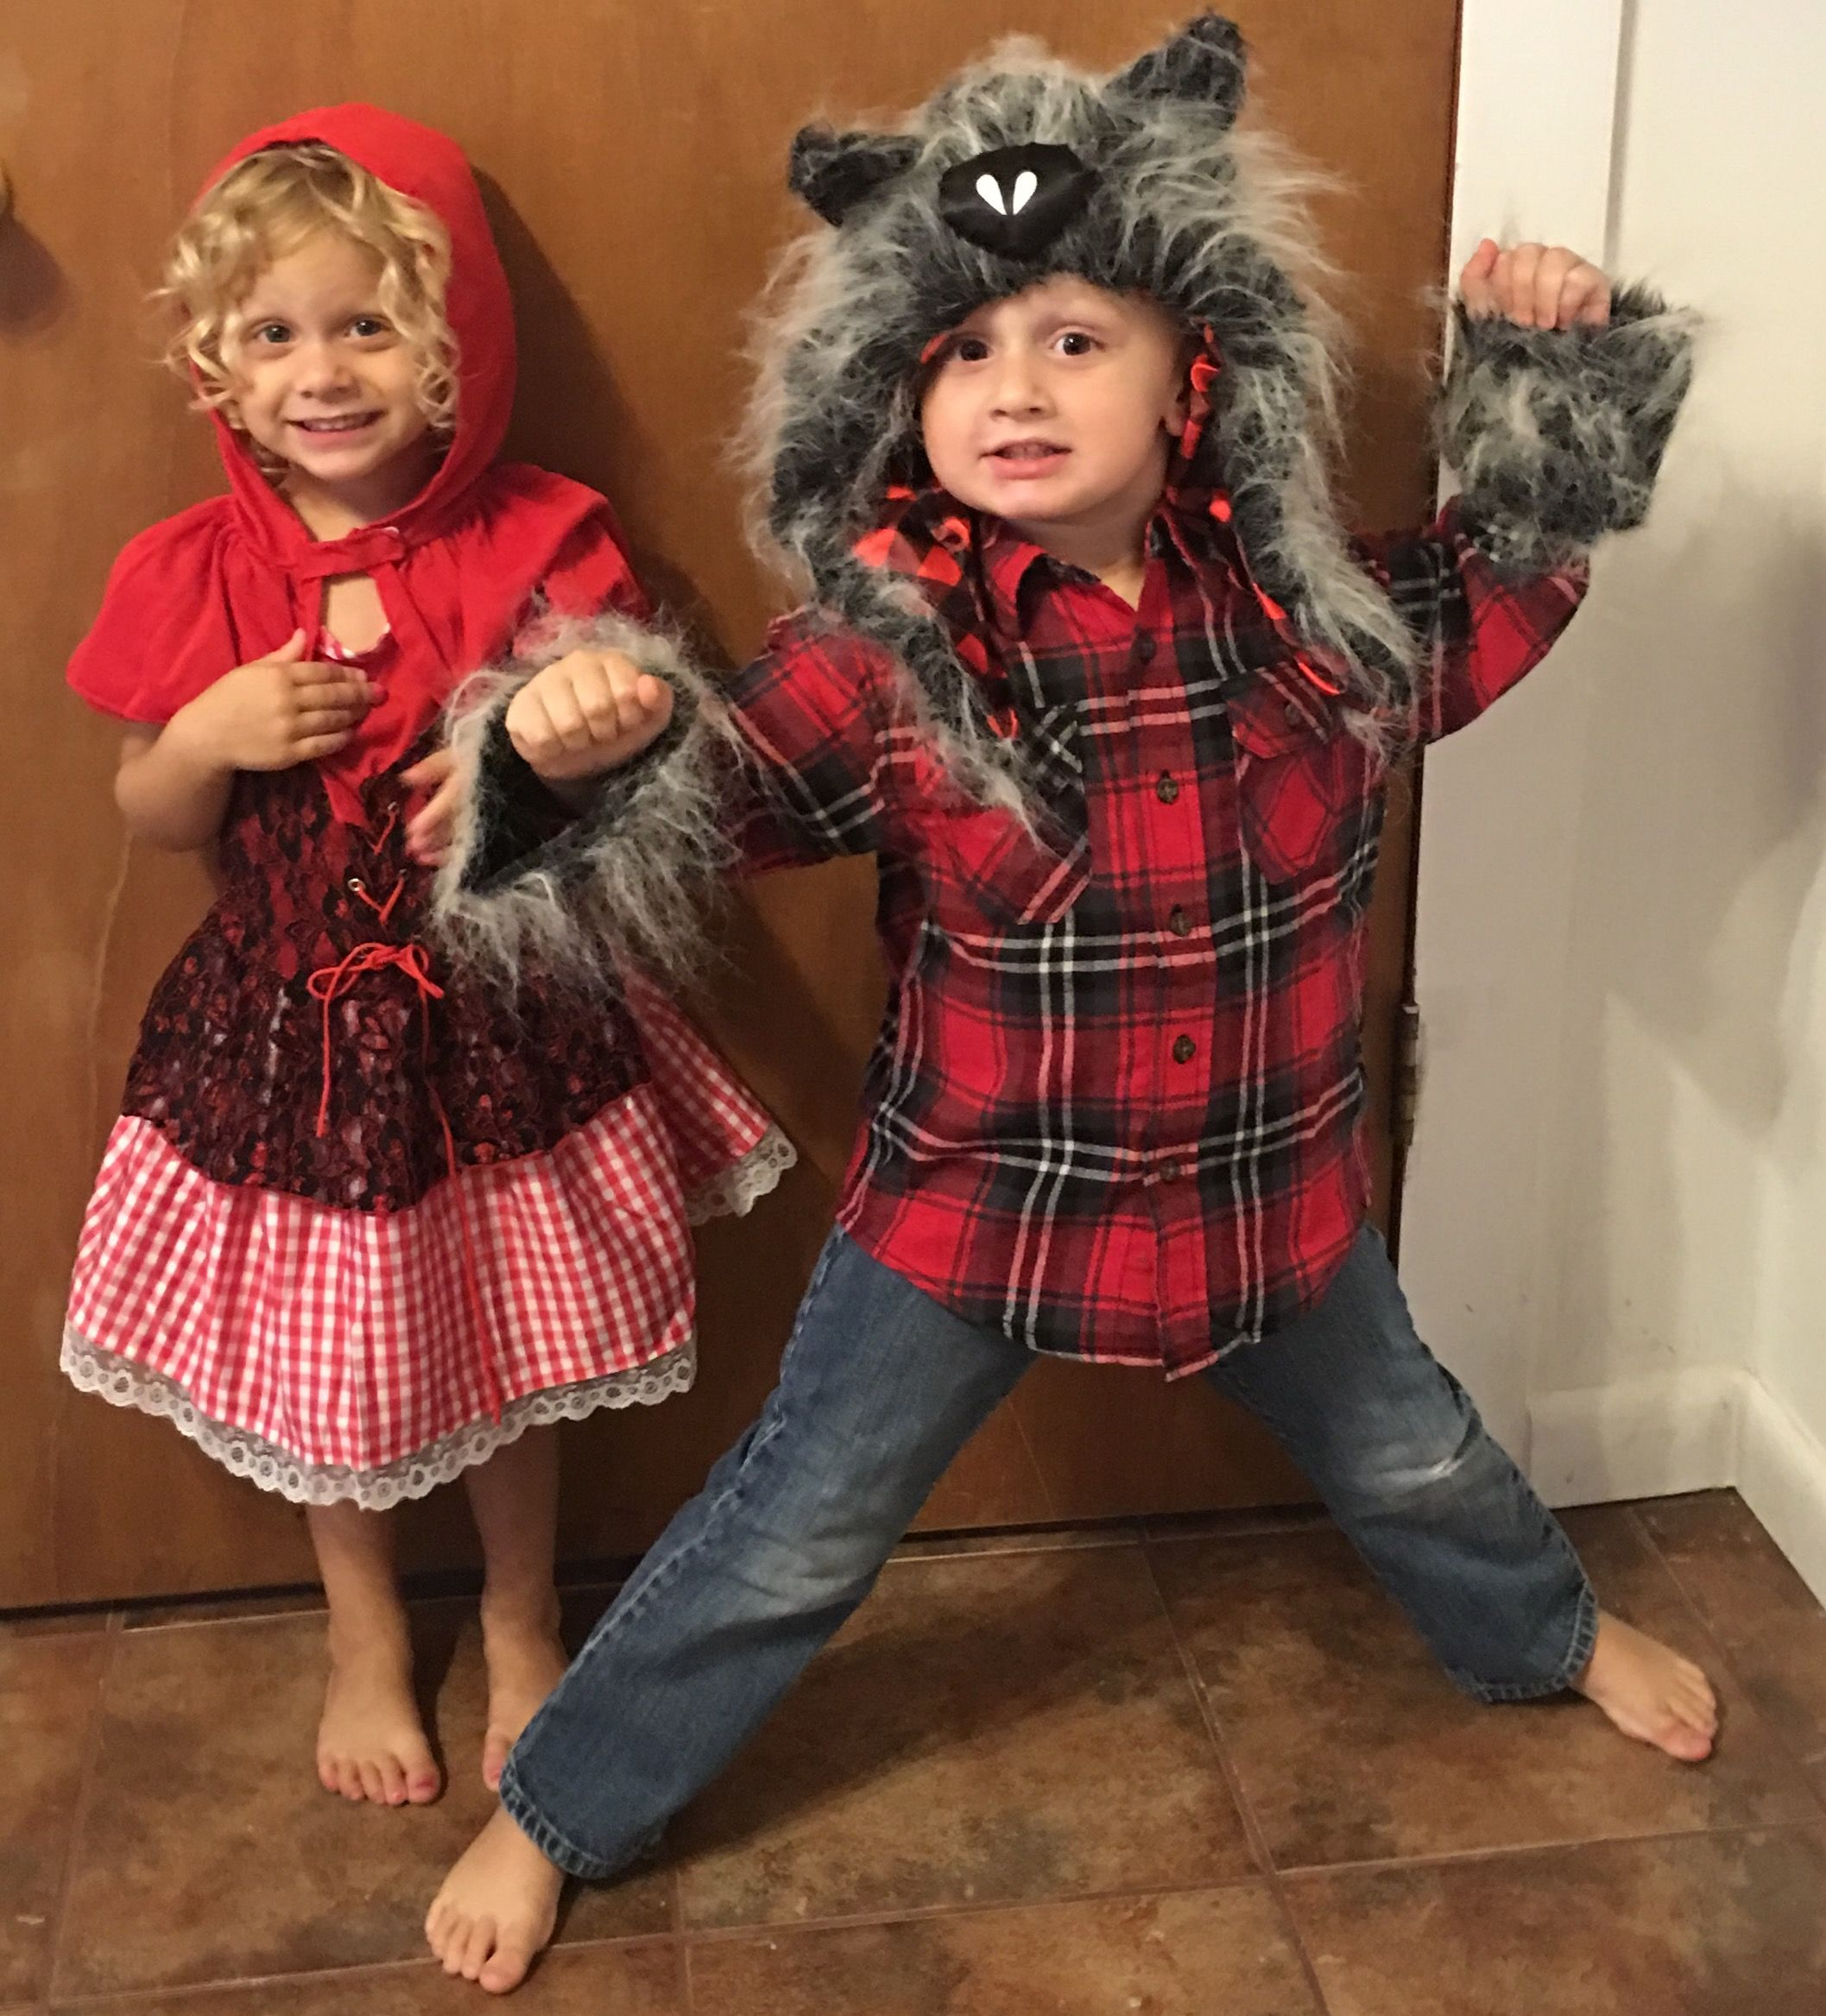 Halloween Costume Ideas Sibling Fun Pinterest Halloween - 20 of the funniest costumes twin kids can wear at halloween